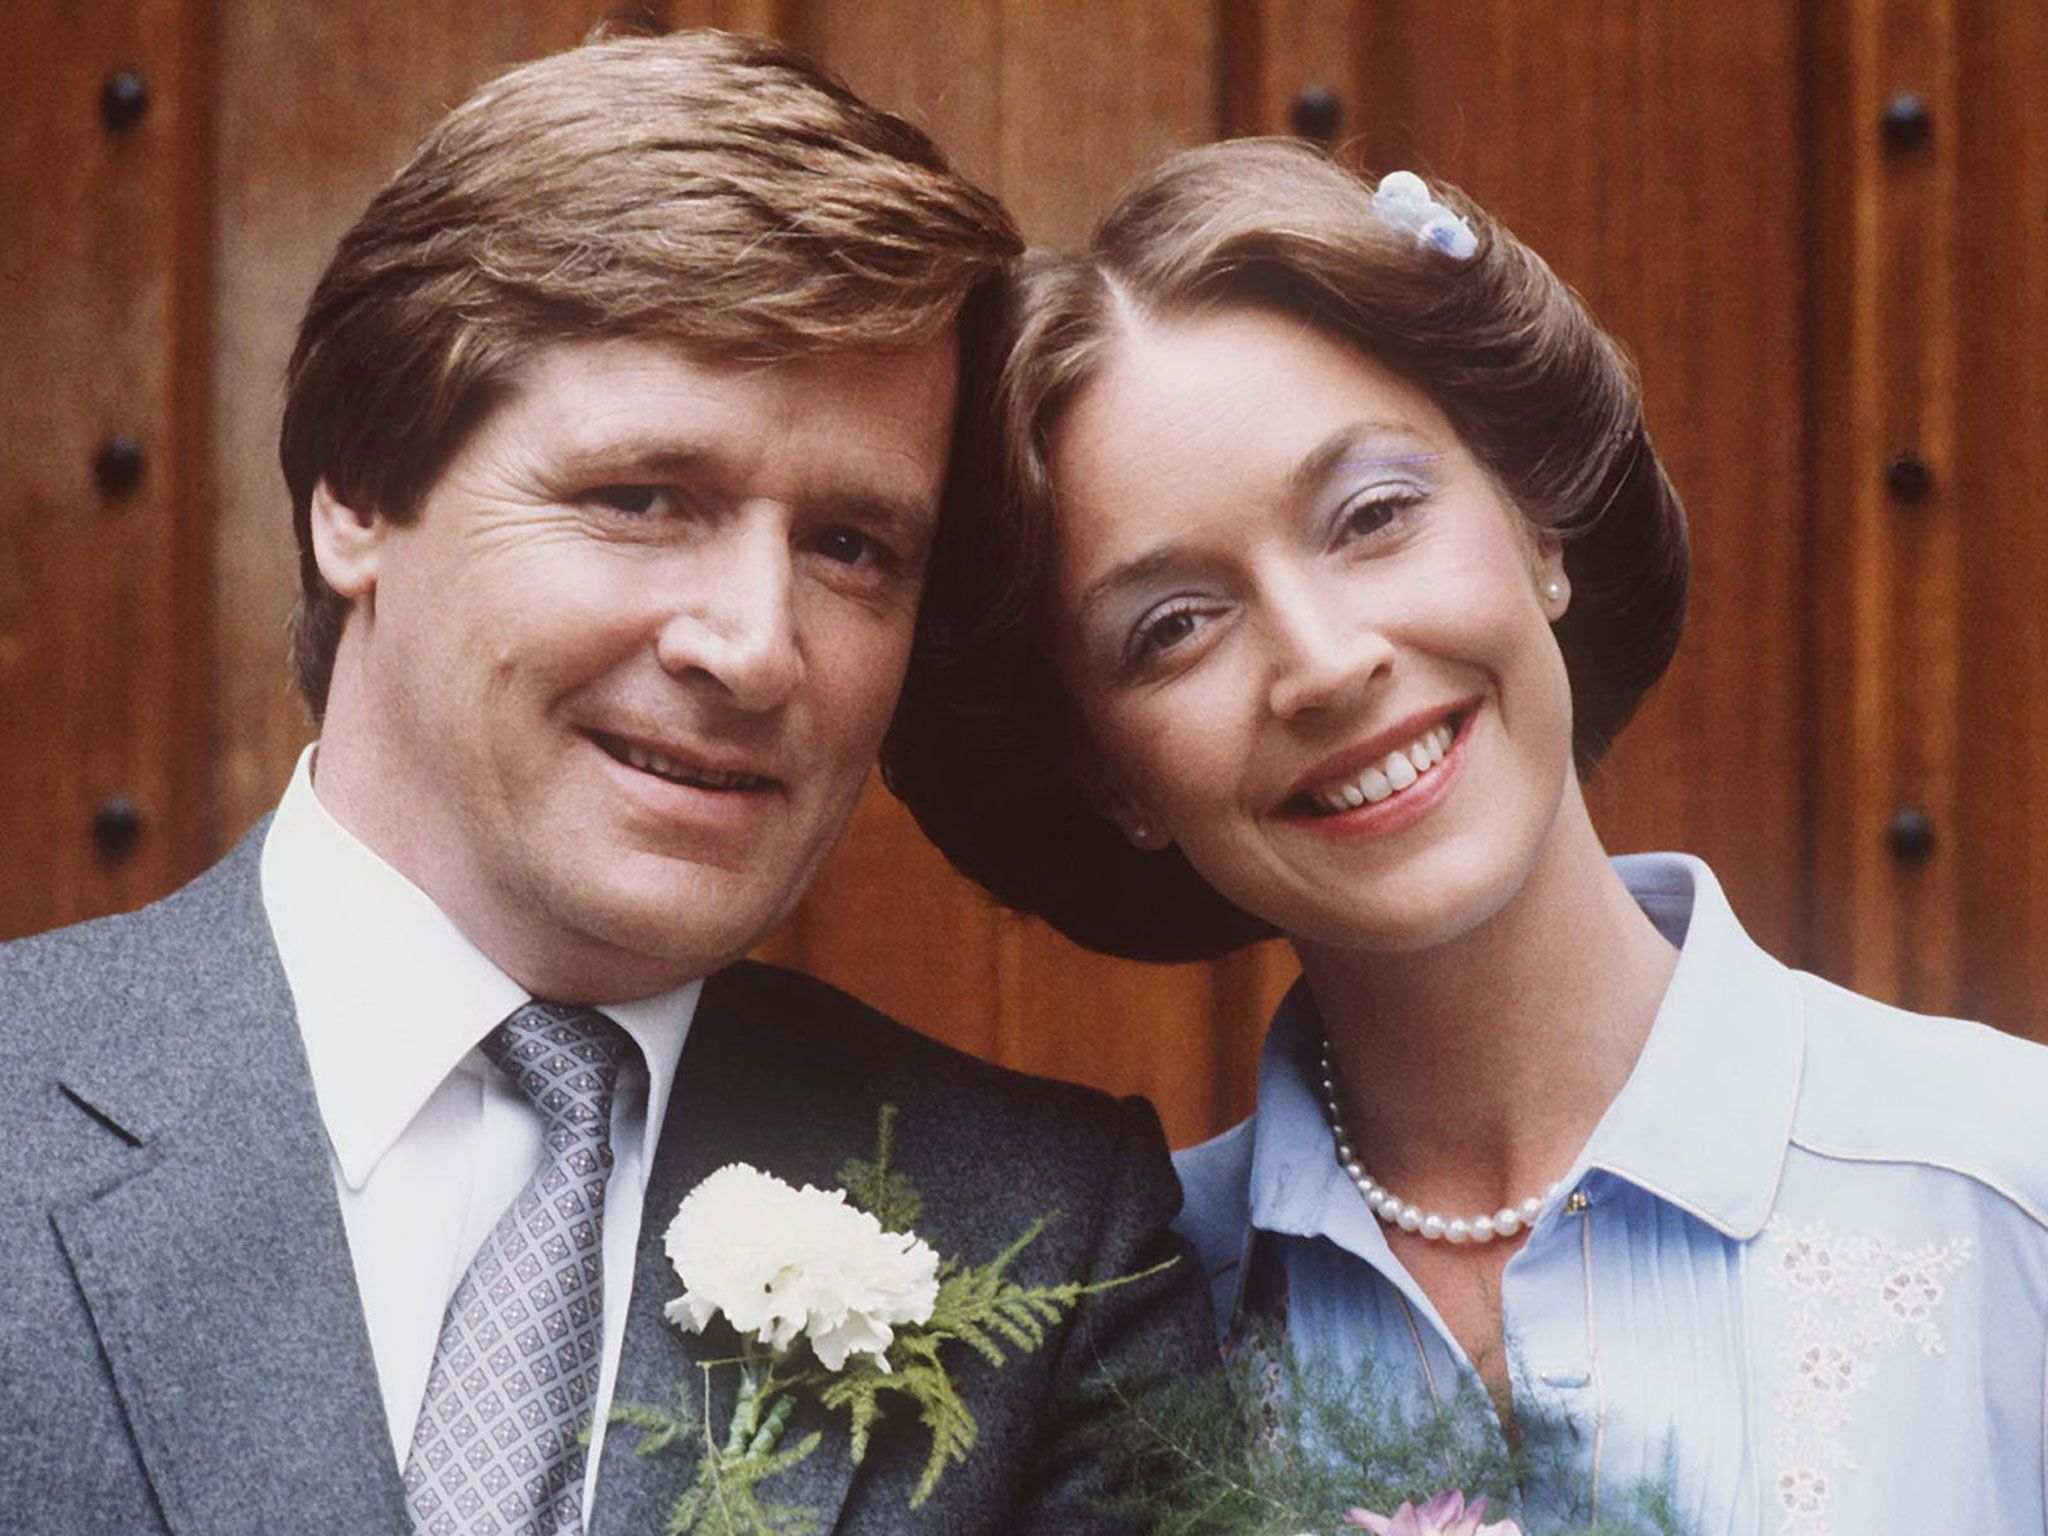 Corrie fans are today mourning the sad loss of much-loved actress Anne Kirkbride, who played Deirdre Barlow in the soap for the past 42 years.  #CoronationStreet